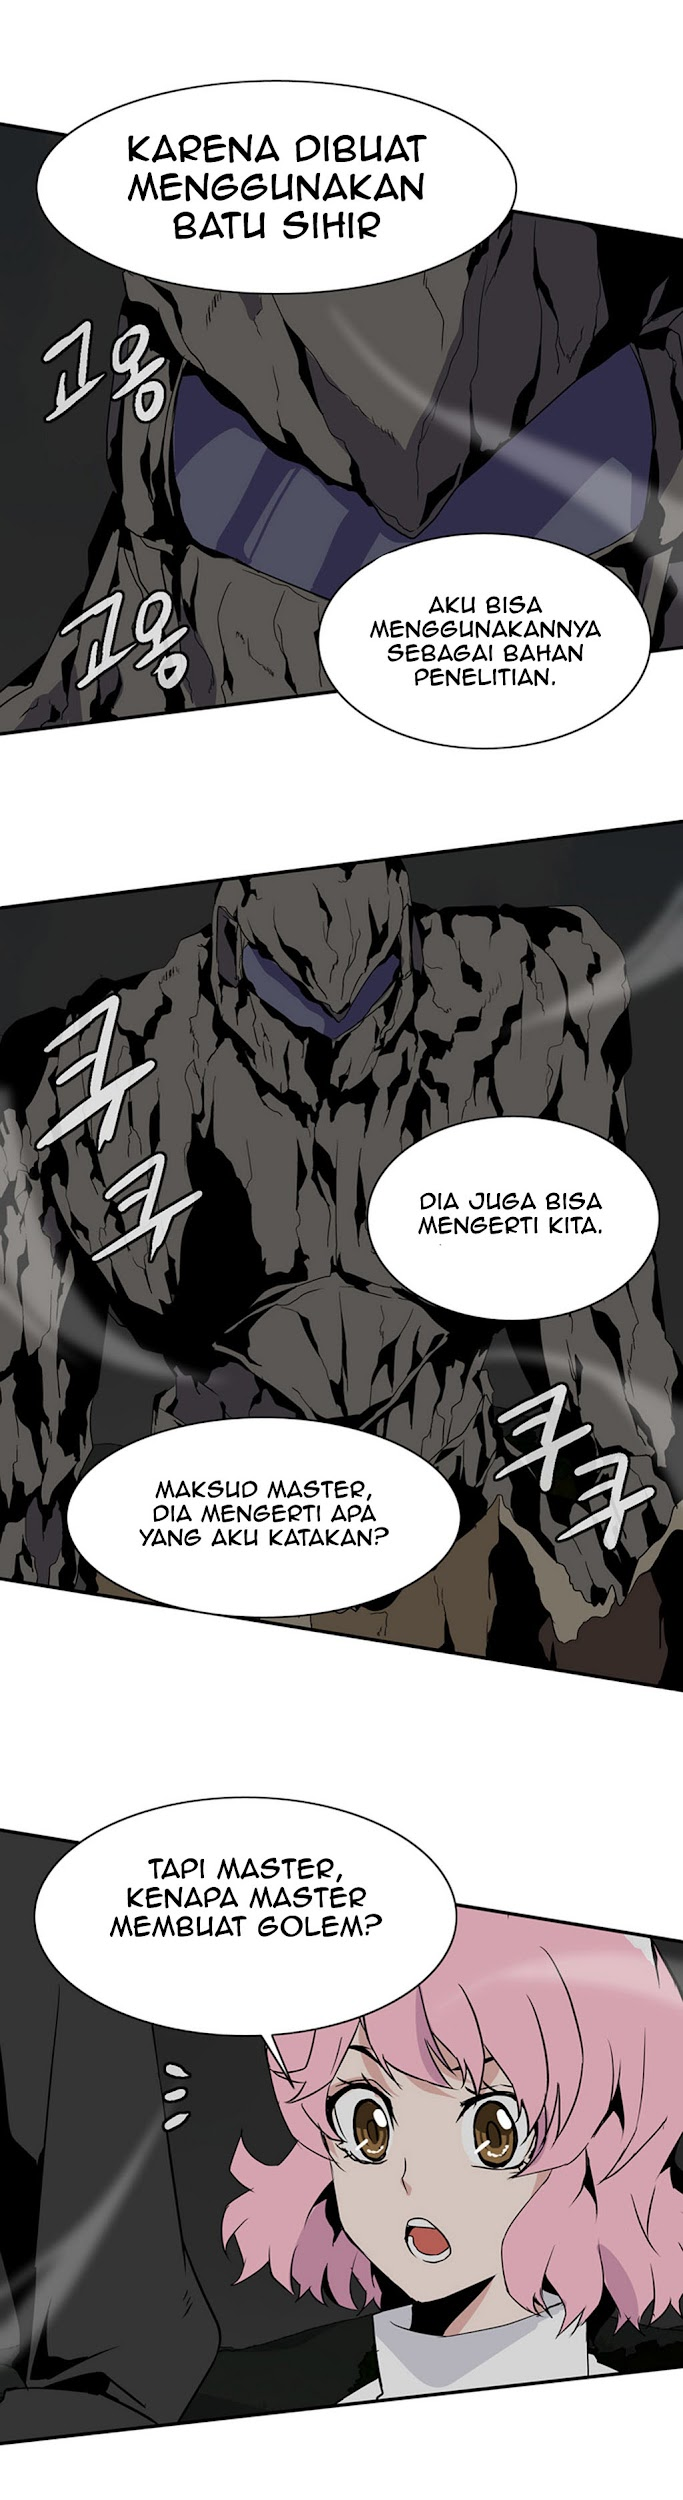 Dilarang COPAS - situs resmi www.mangacanblog.com - Komik wizardly tower 024 - chapter 24 25 Indonesia wizardly tower 024 - chapter 24 Terbaru 6|Baca Manga Komik Indonesia|Mangacan